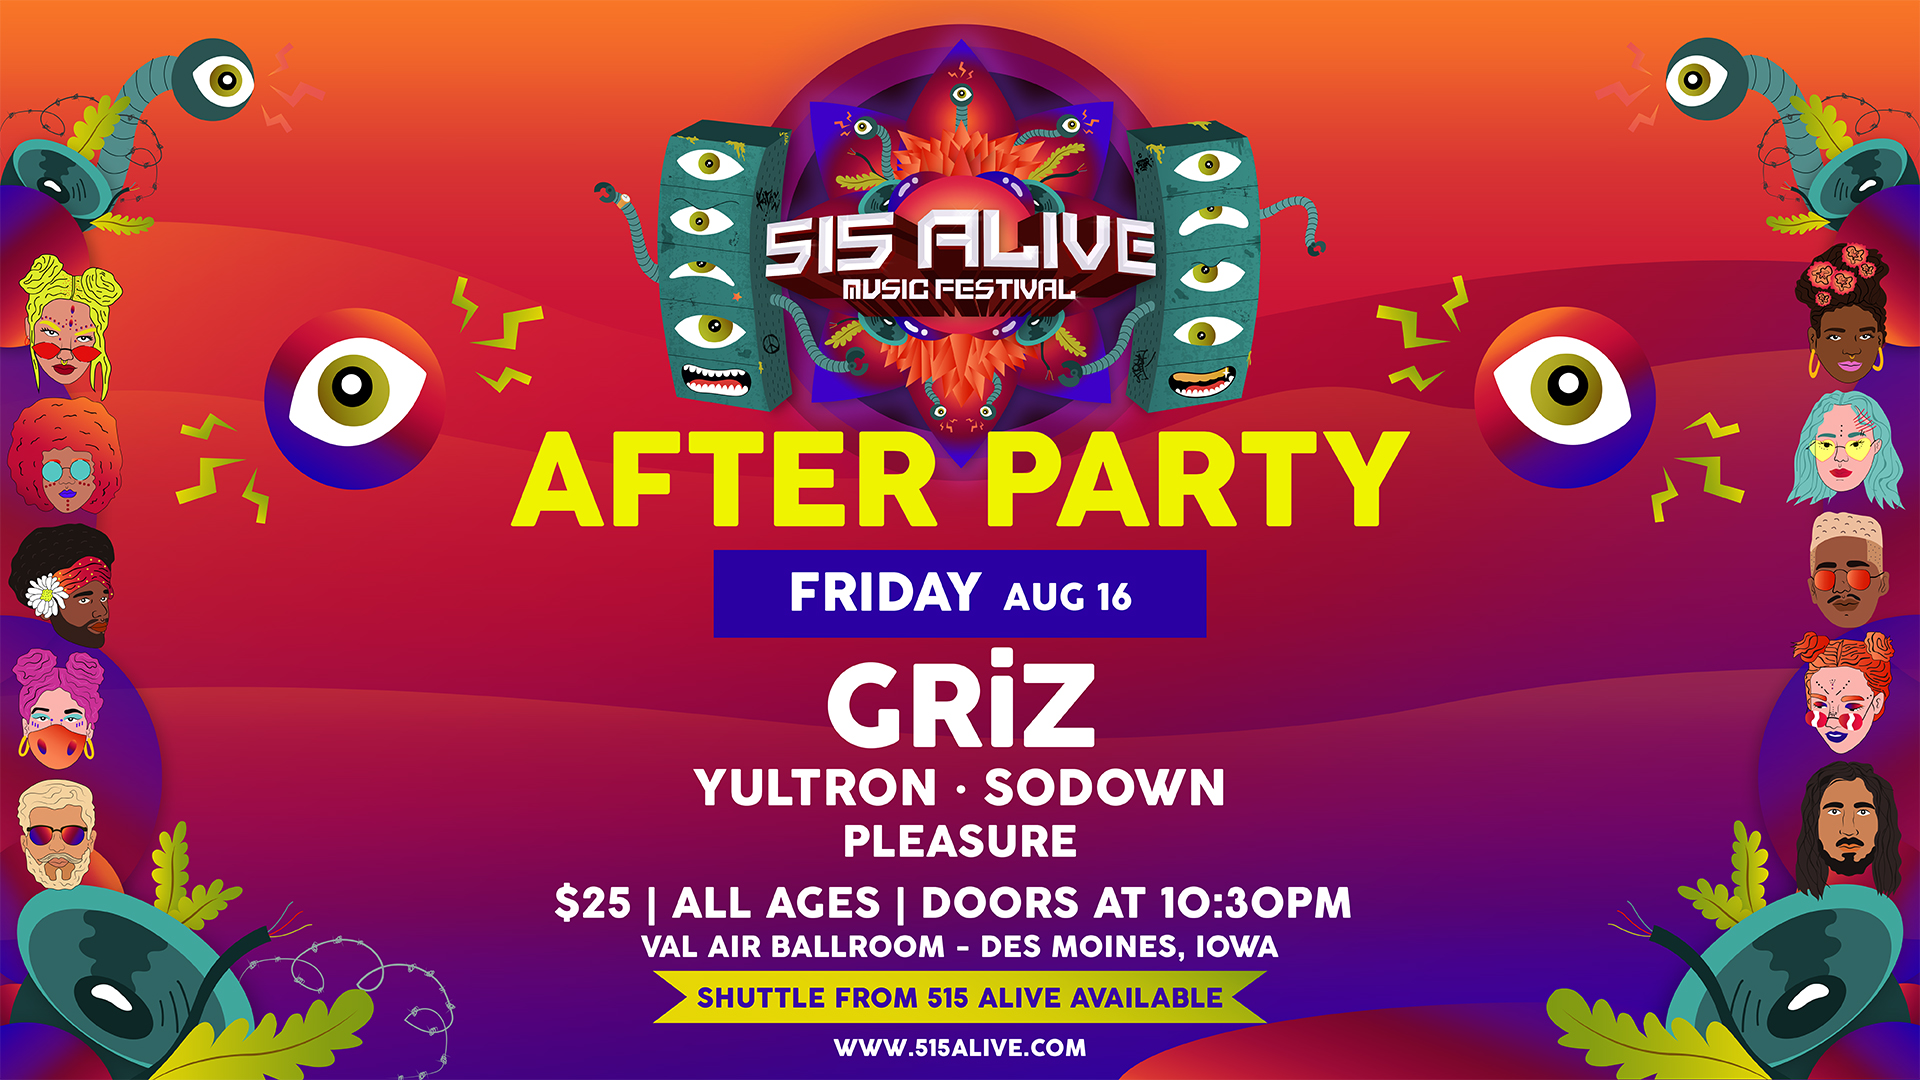 515 Alive 2019 Facebook Event 1920x1080 After Party Friday & Saturday-1.jpg